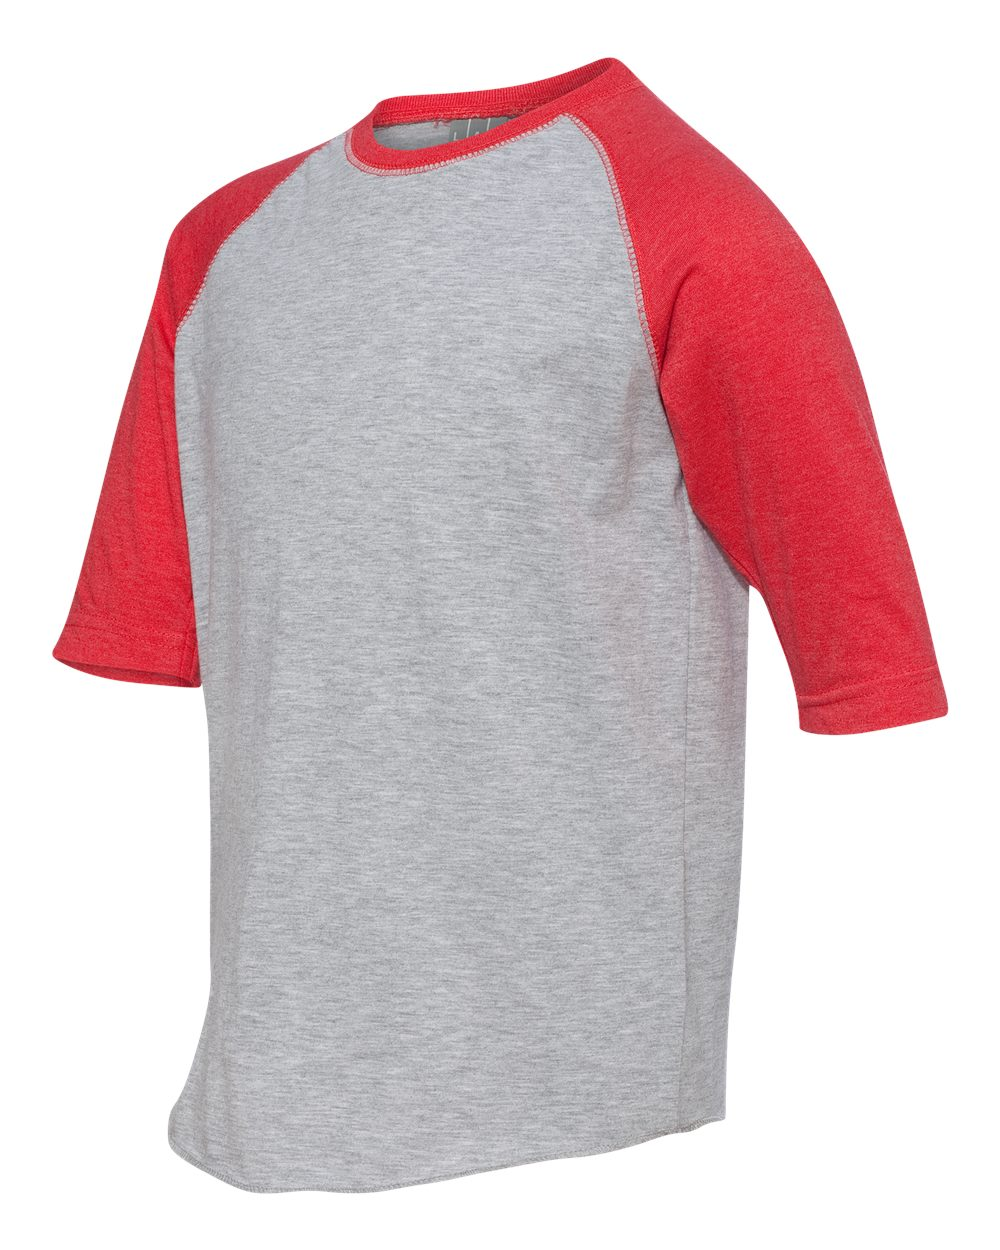 9ce8d45b Tap to expand · Home / T-Shirts / LAT 6130 – Youth Baseball Fine Jersey Tee